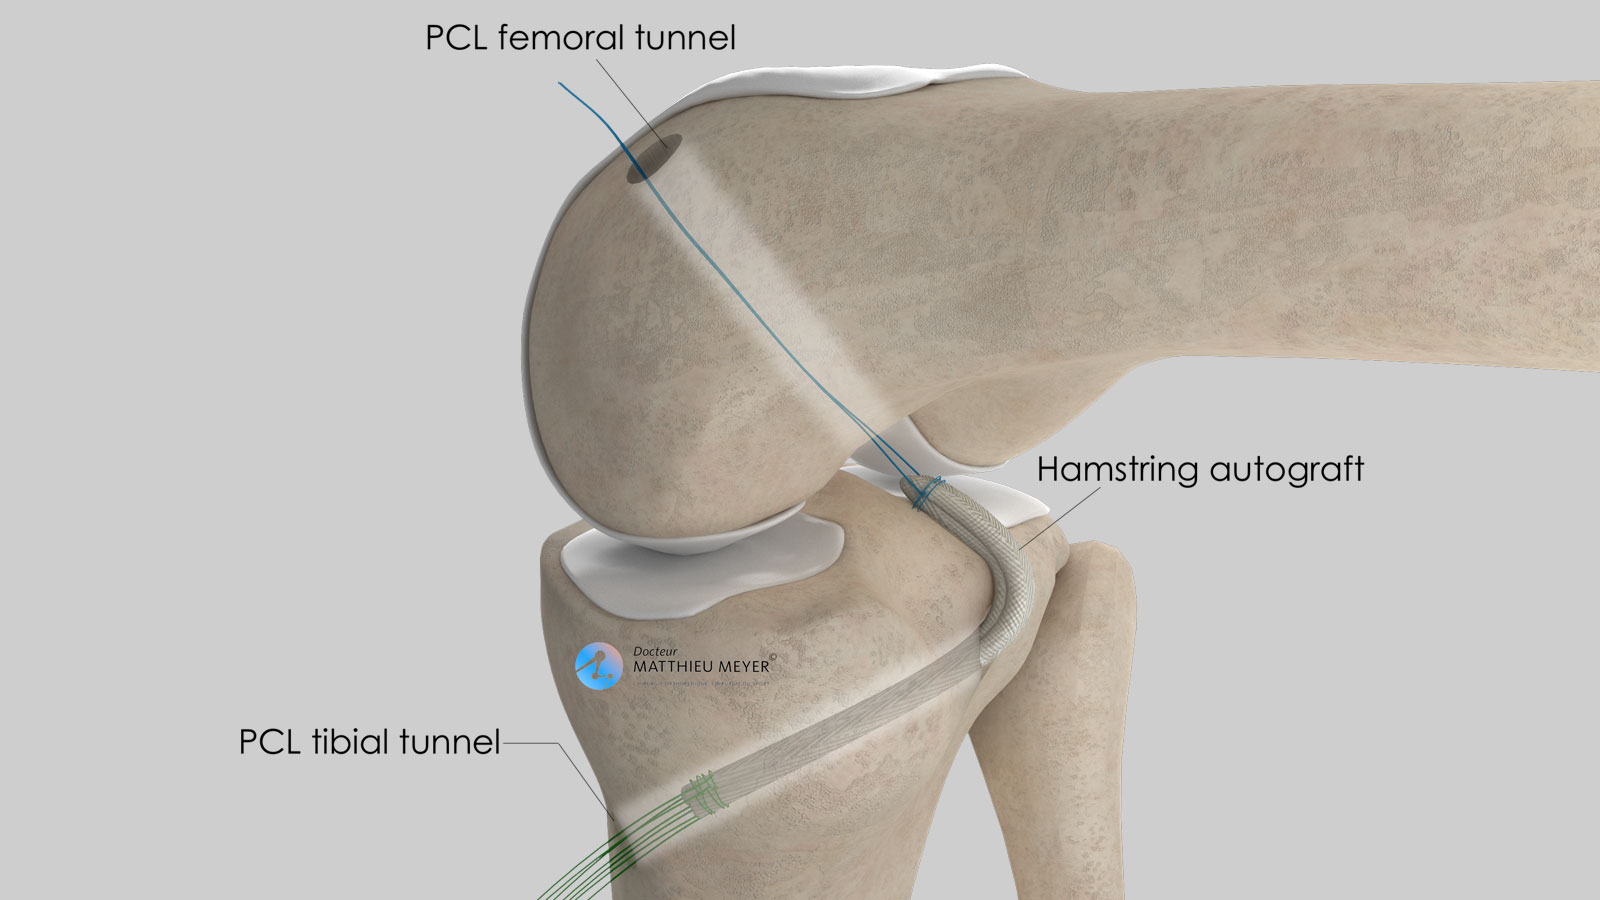 Insertion of the ligament graft in the bone tunnels